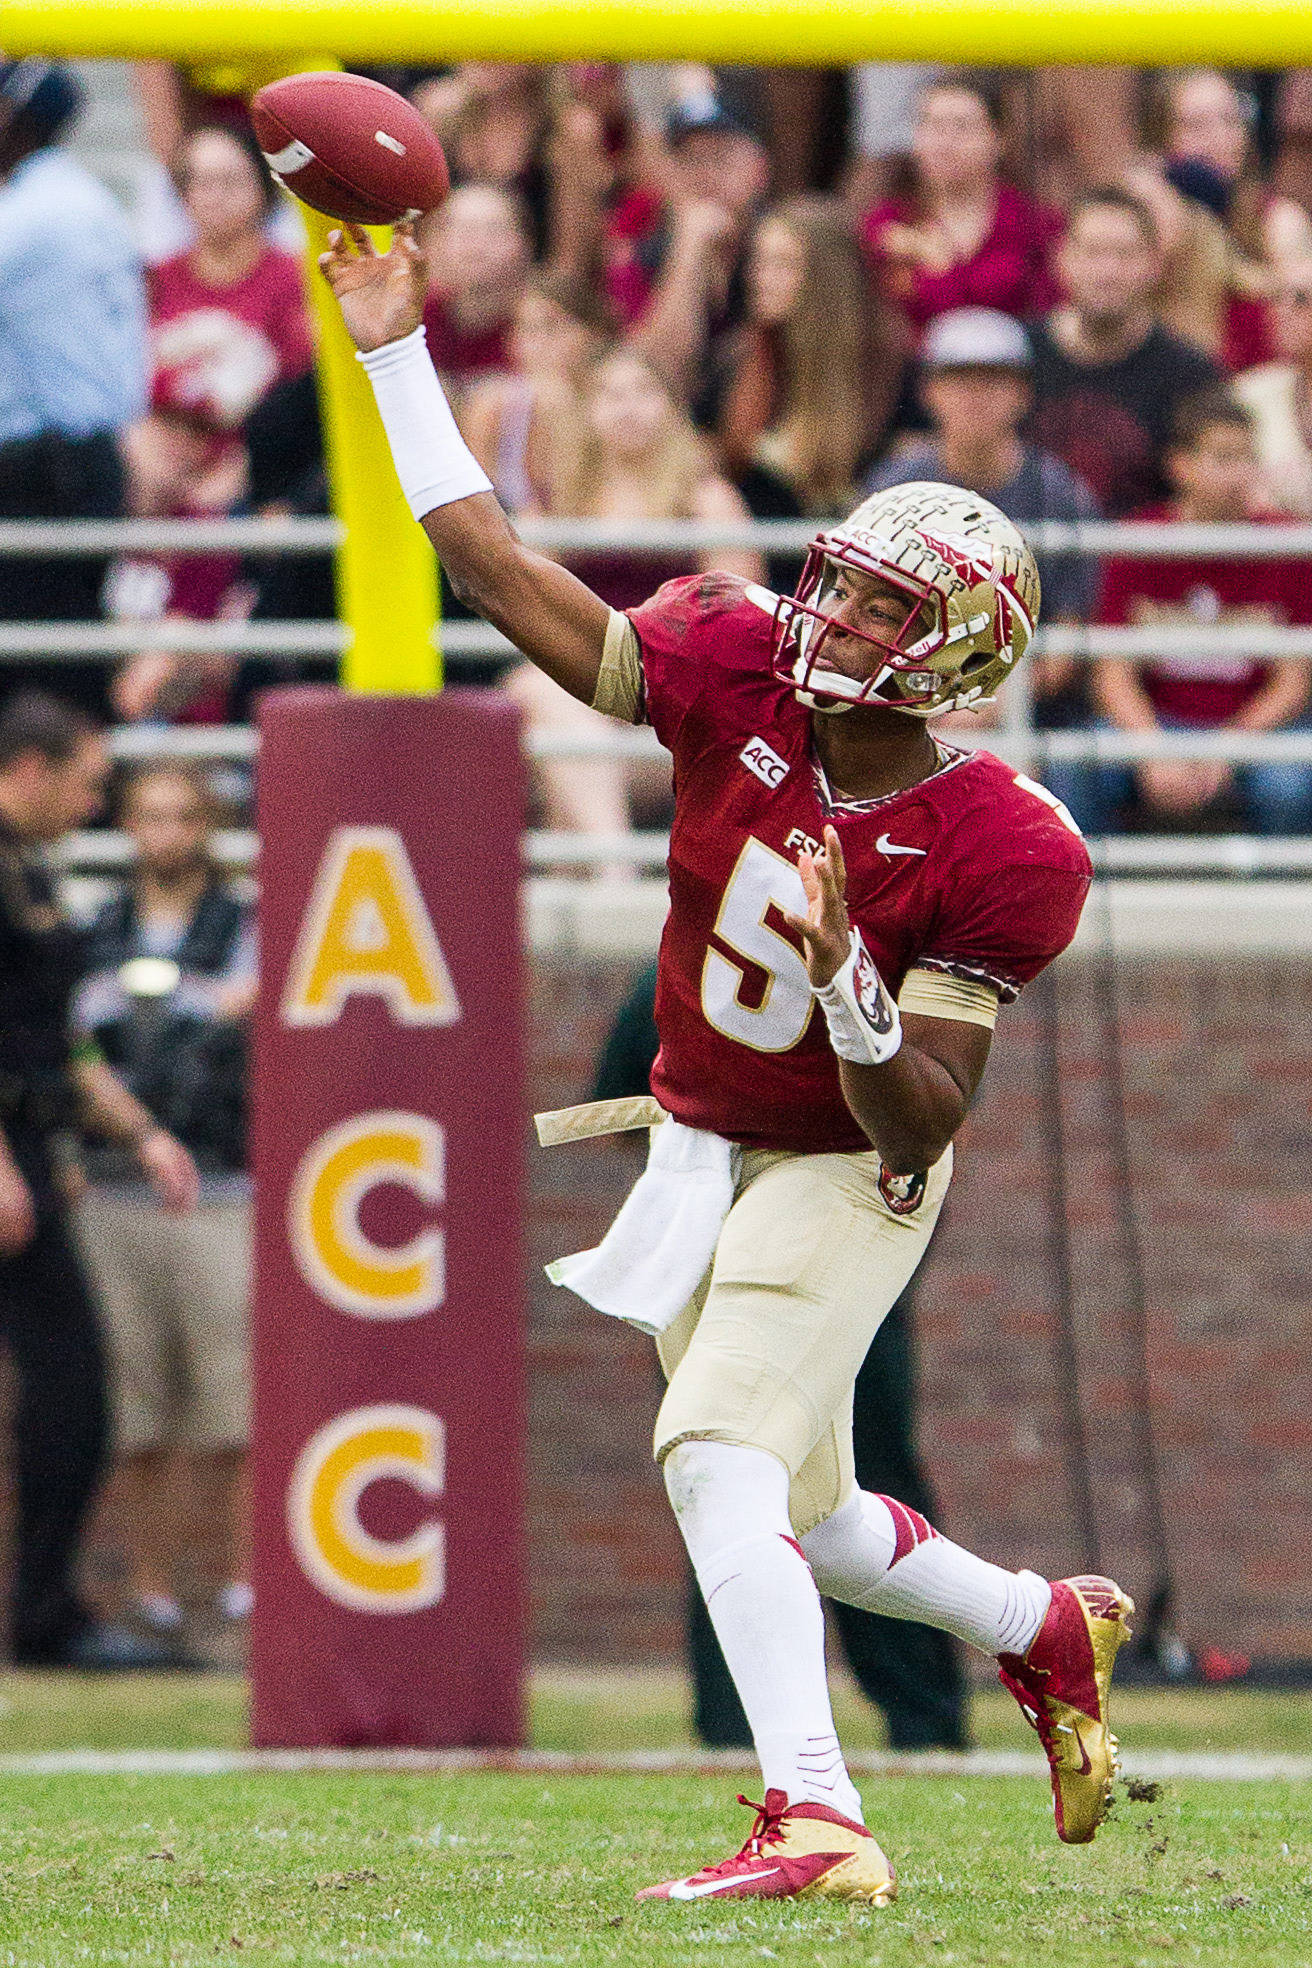 Jameis Winston (5) throws deep during FSU Football's 80-14 victory over Idaho in Tallahassee, Fla on Saturday, November 23, 2013. Photos by Mike Schwarz.